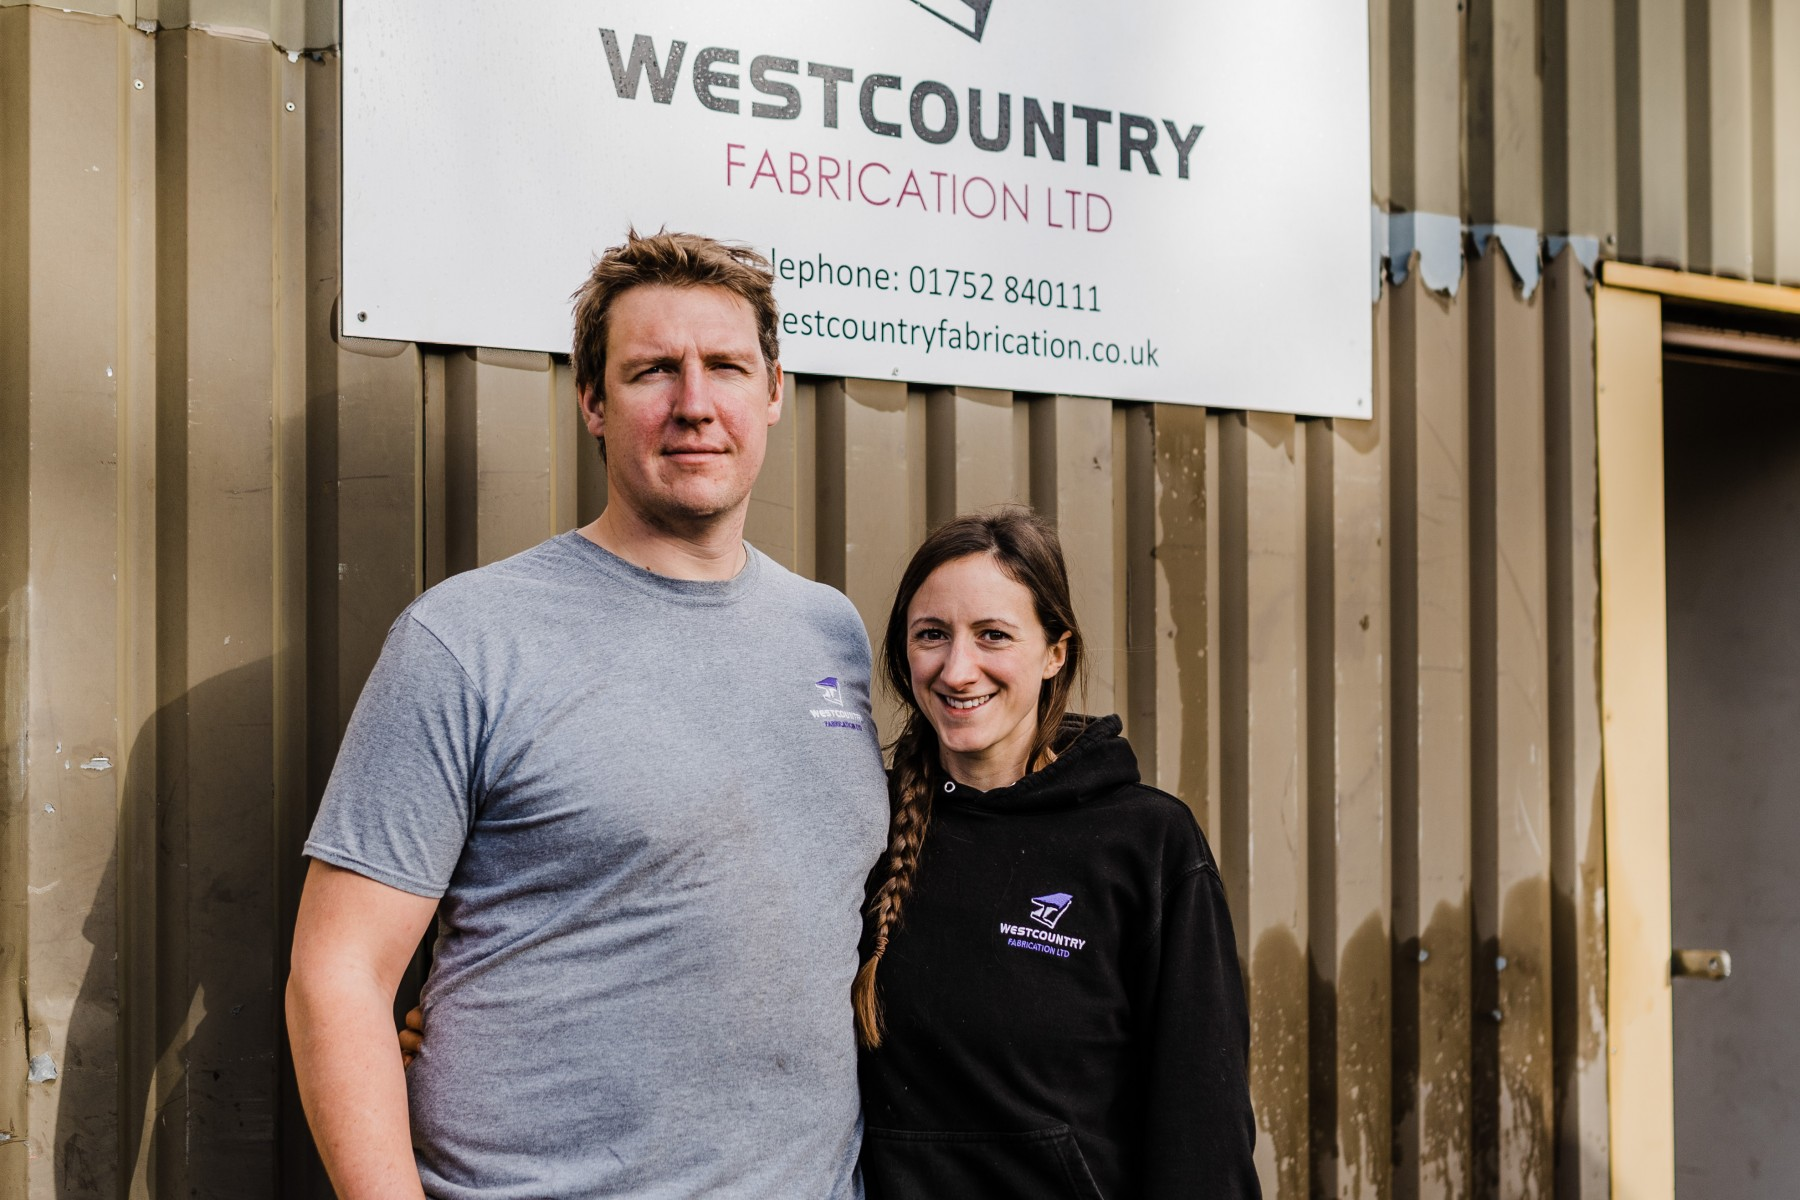 Westcountry Fabrications